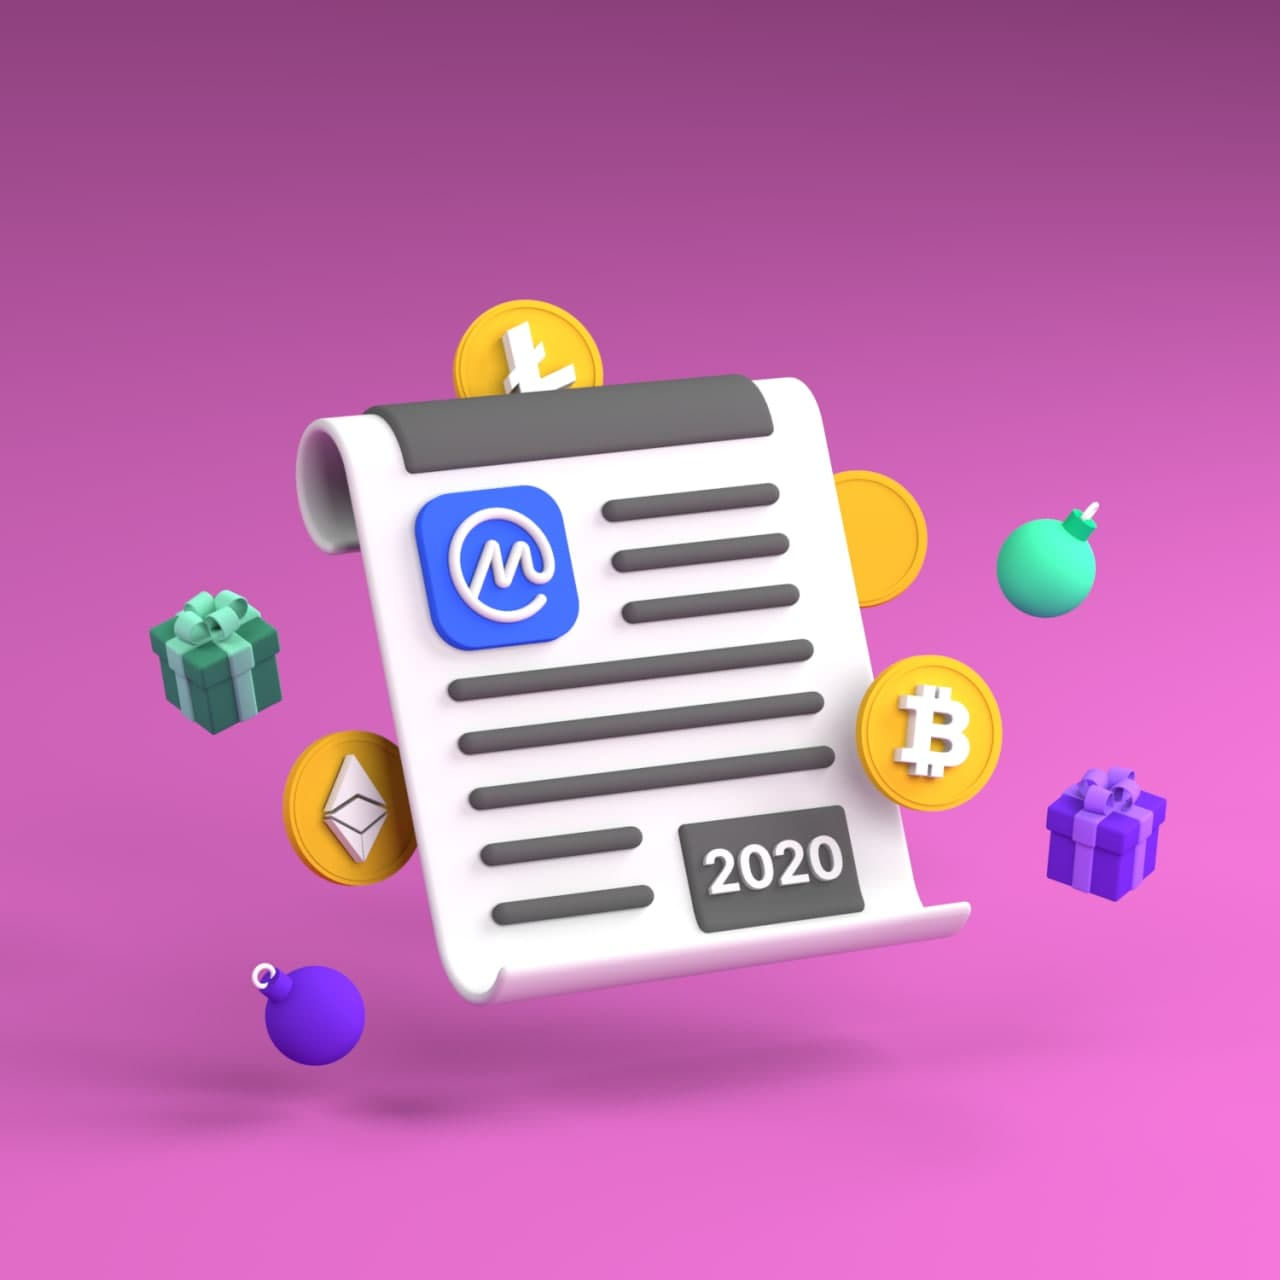 The 10 Best Crypto News Stories of 2020